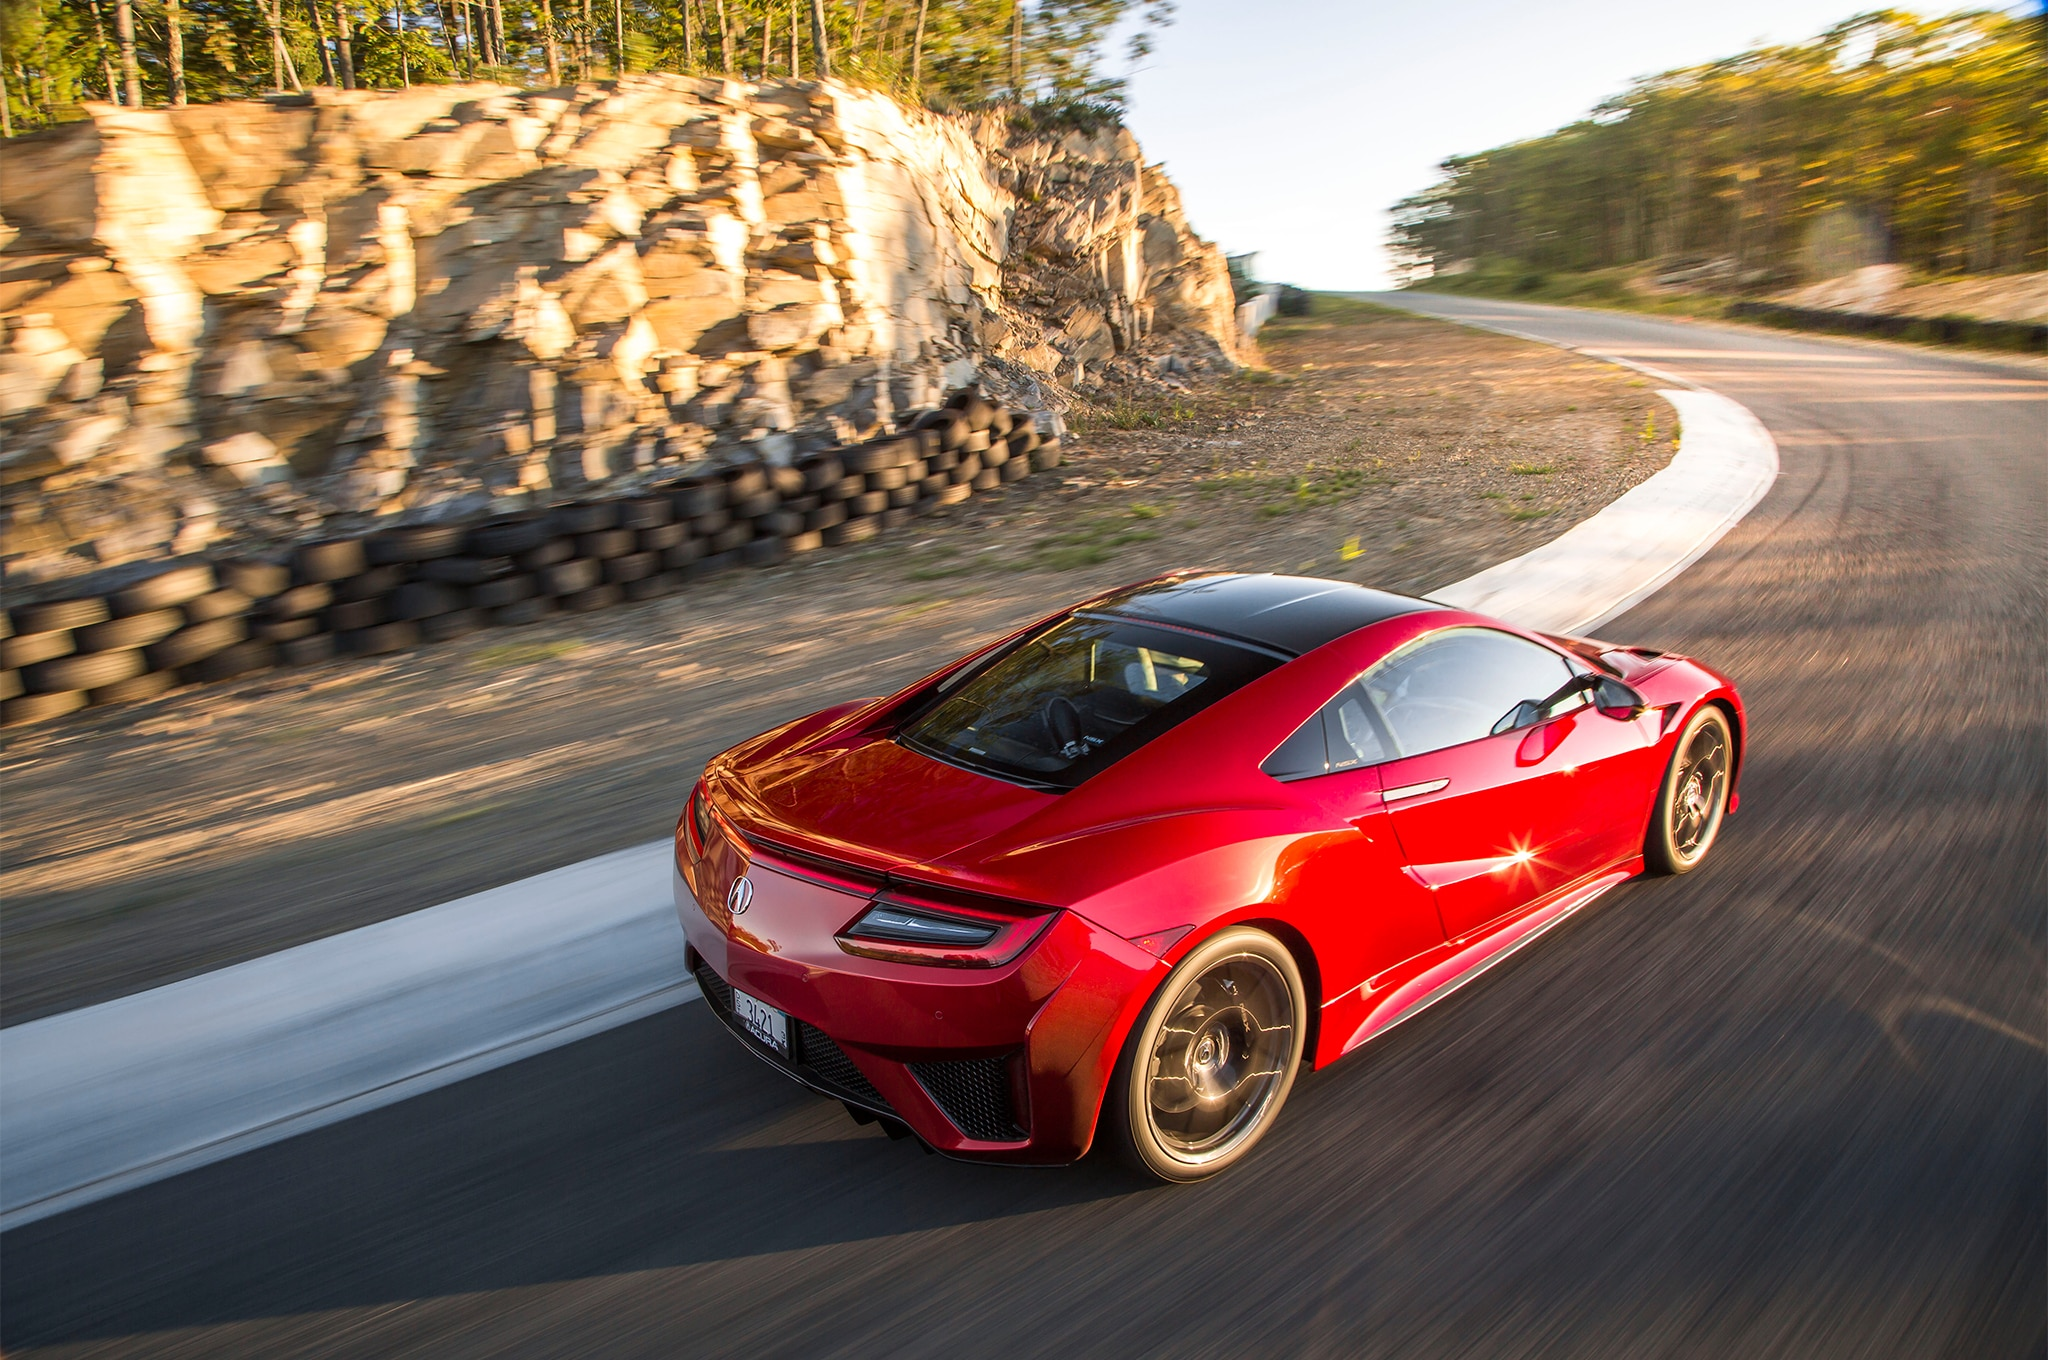 2017 Acura NSX Rear Three Quarter In Motion 06